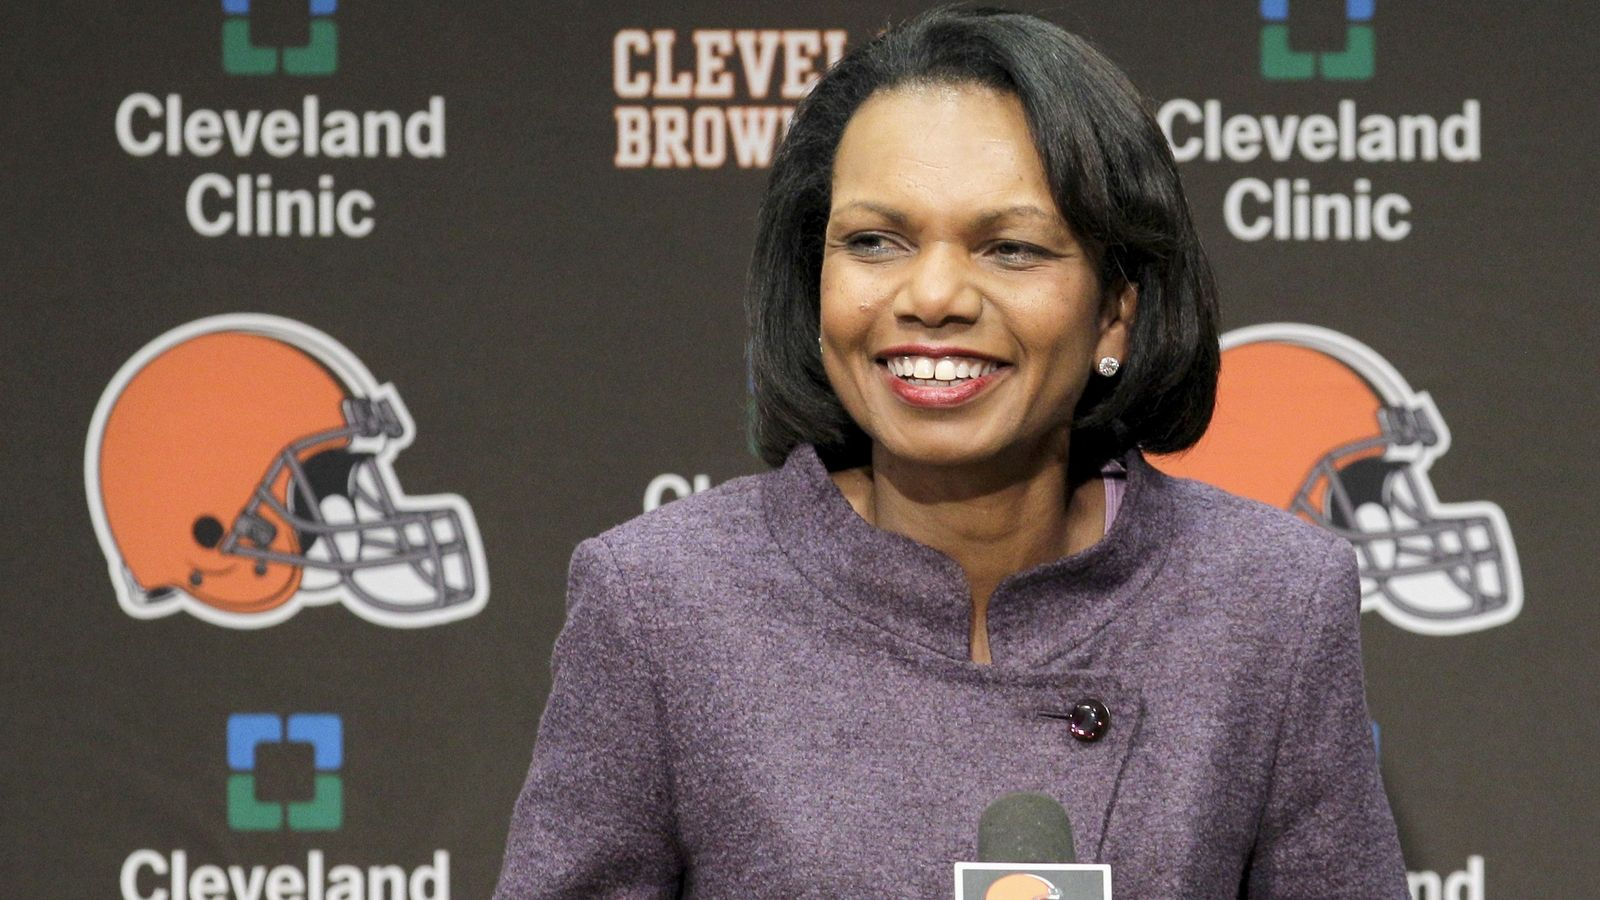 Yes she can: Why Condoleezza Rice has what it takes to be a head coach in the NFL